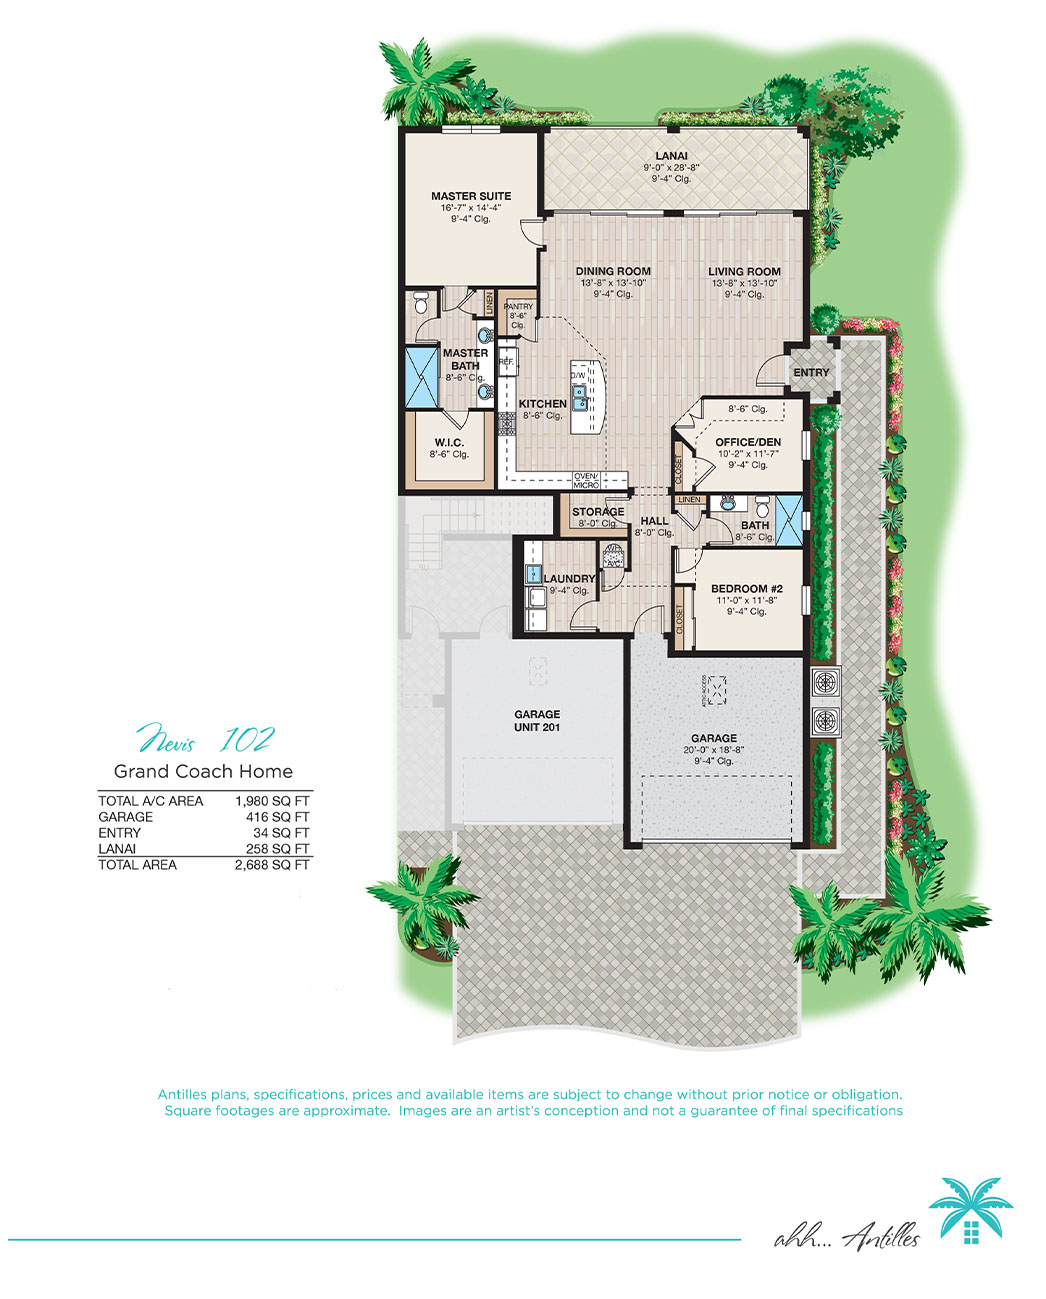 Grand Coach Homes Nevis 102 | Antilles of Naples, Florida - West Indies Styled Residential Resort